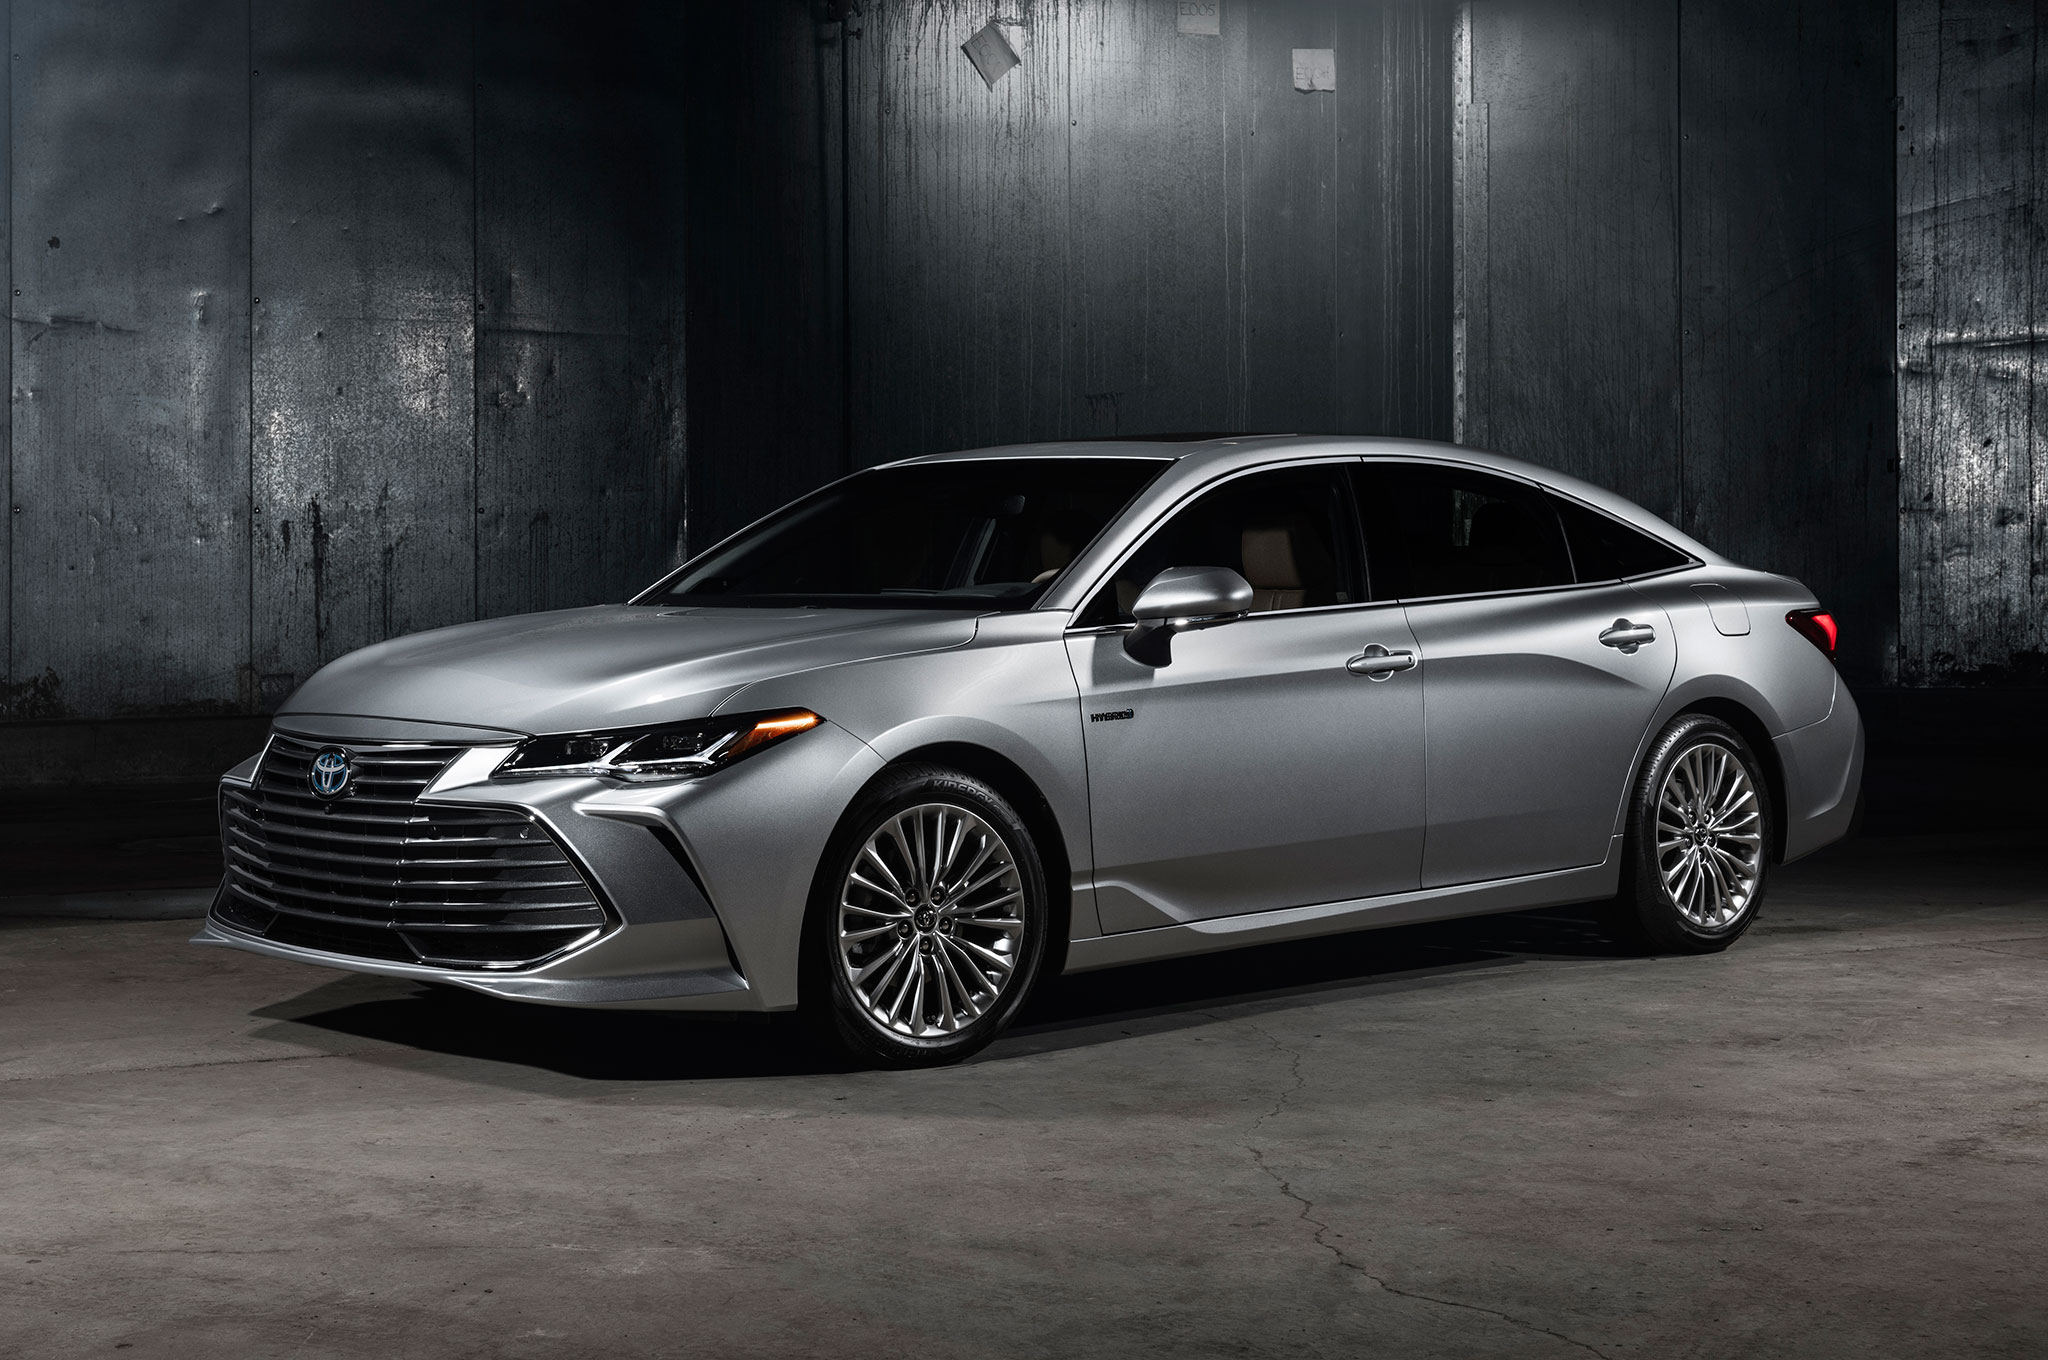 Toyota Avalon Makes Debut in Detroit